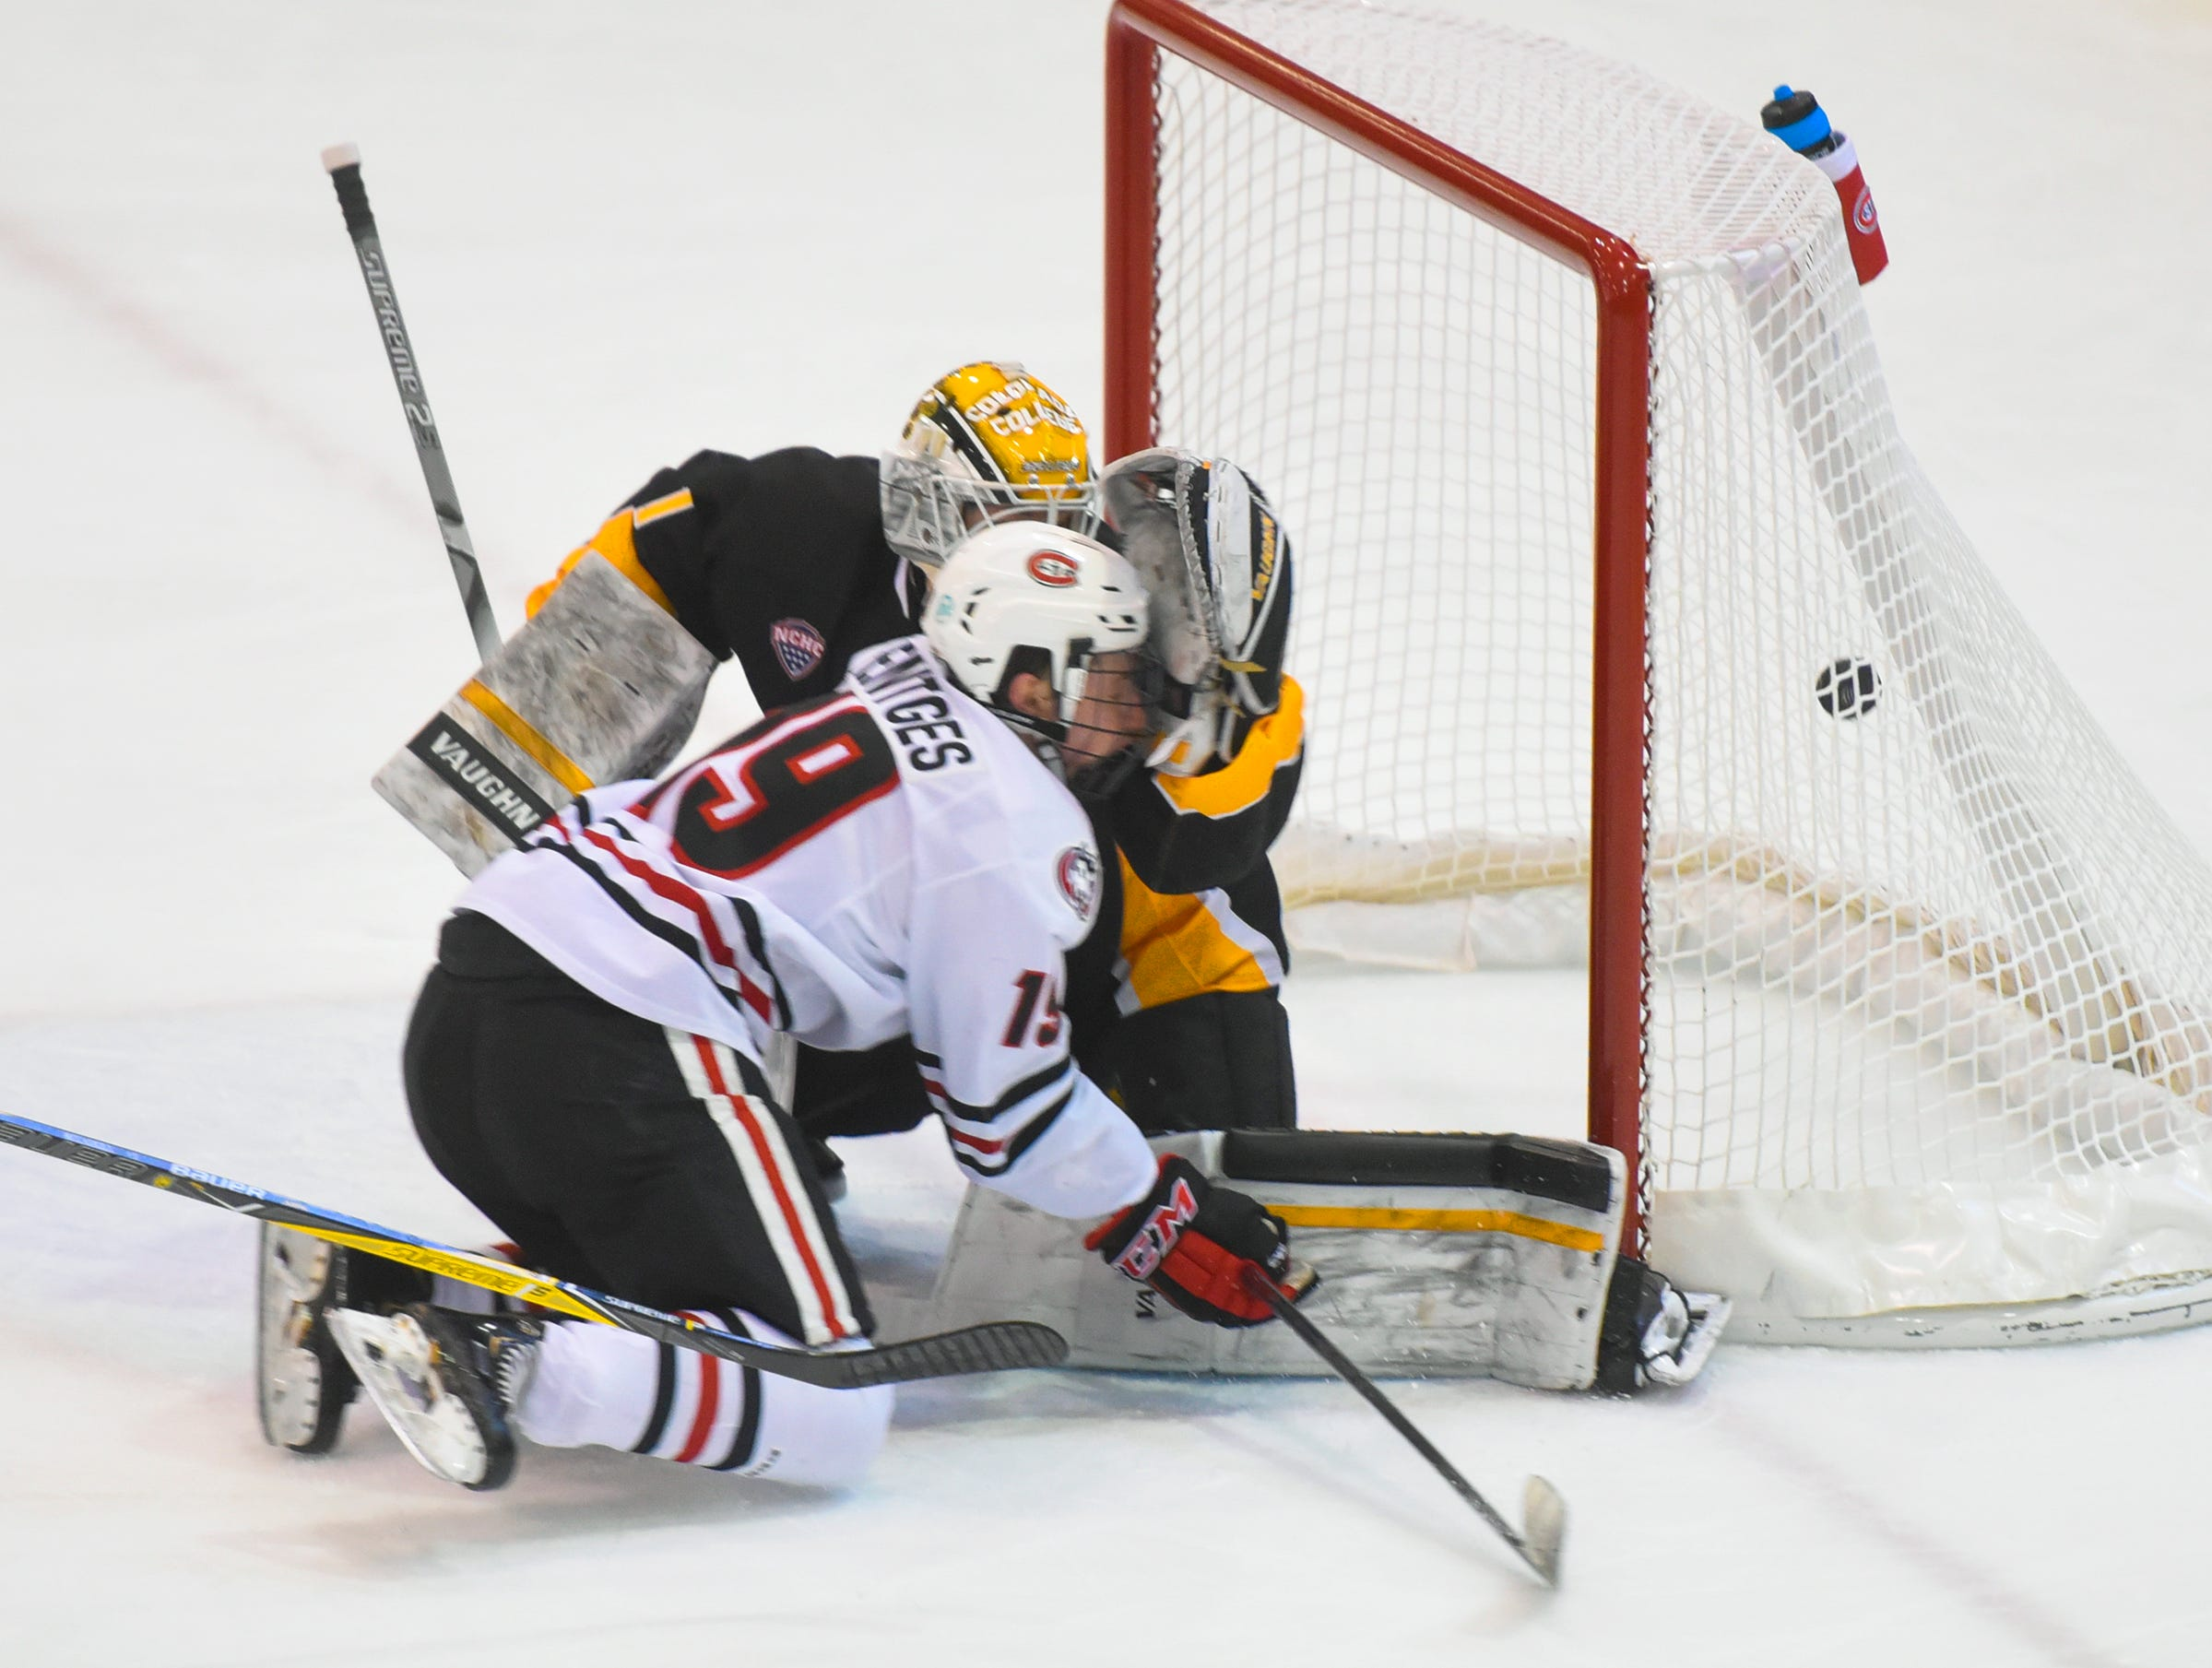 St. Cloud State's Sam Hentges slides into Colorado College goaltender Alex Leclerc after scoring a goal during the first period of the Saturday, Feb. 9, game at the Herb Brooks National Hockey Center in St. Cloud.